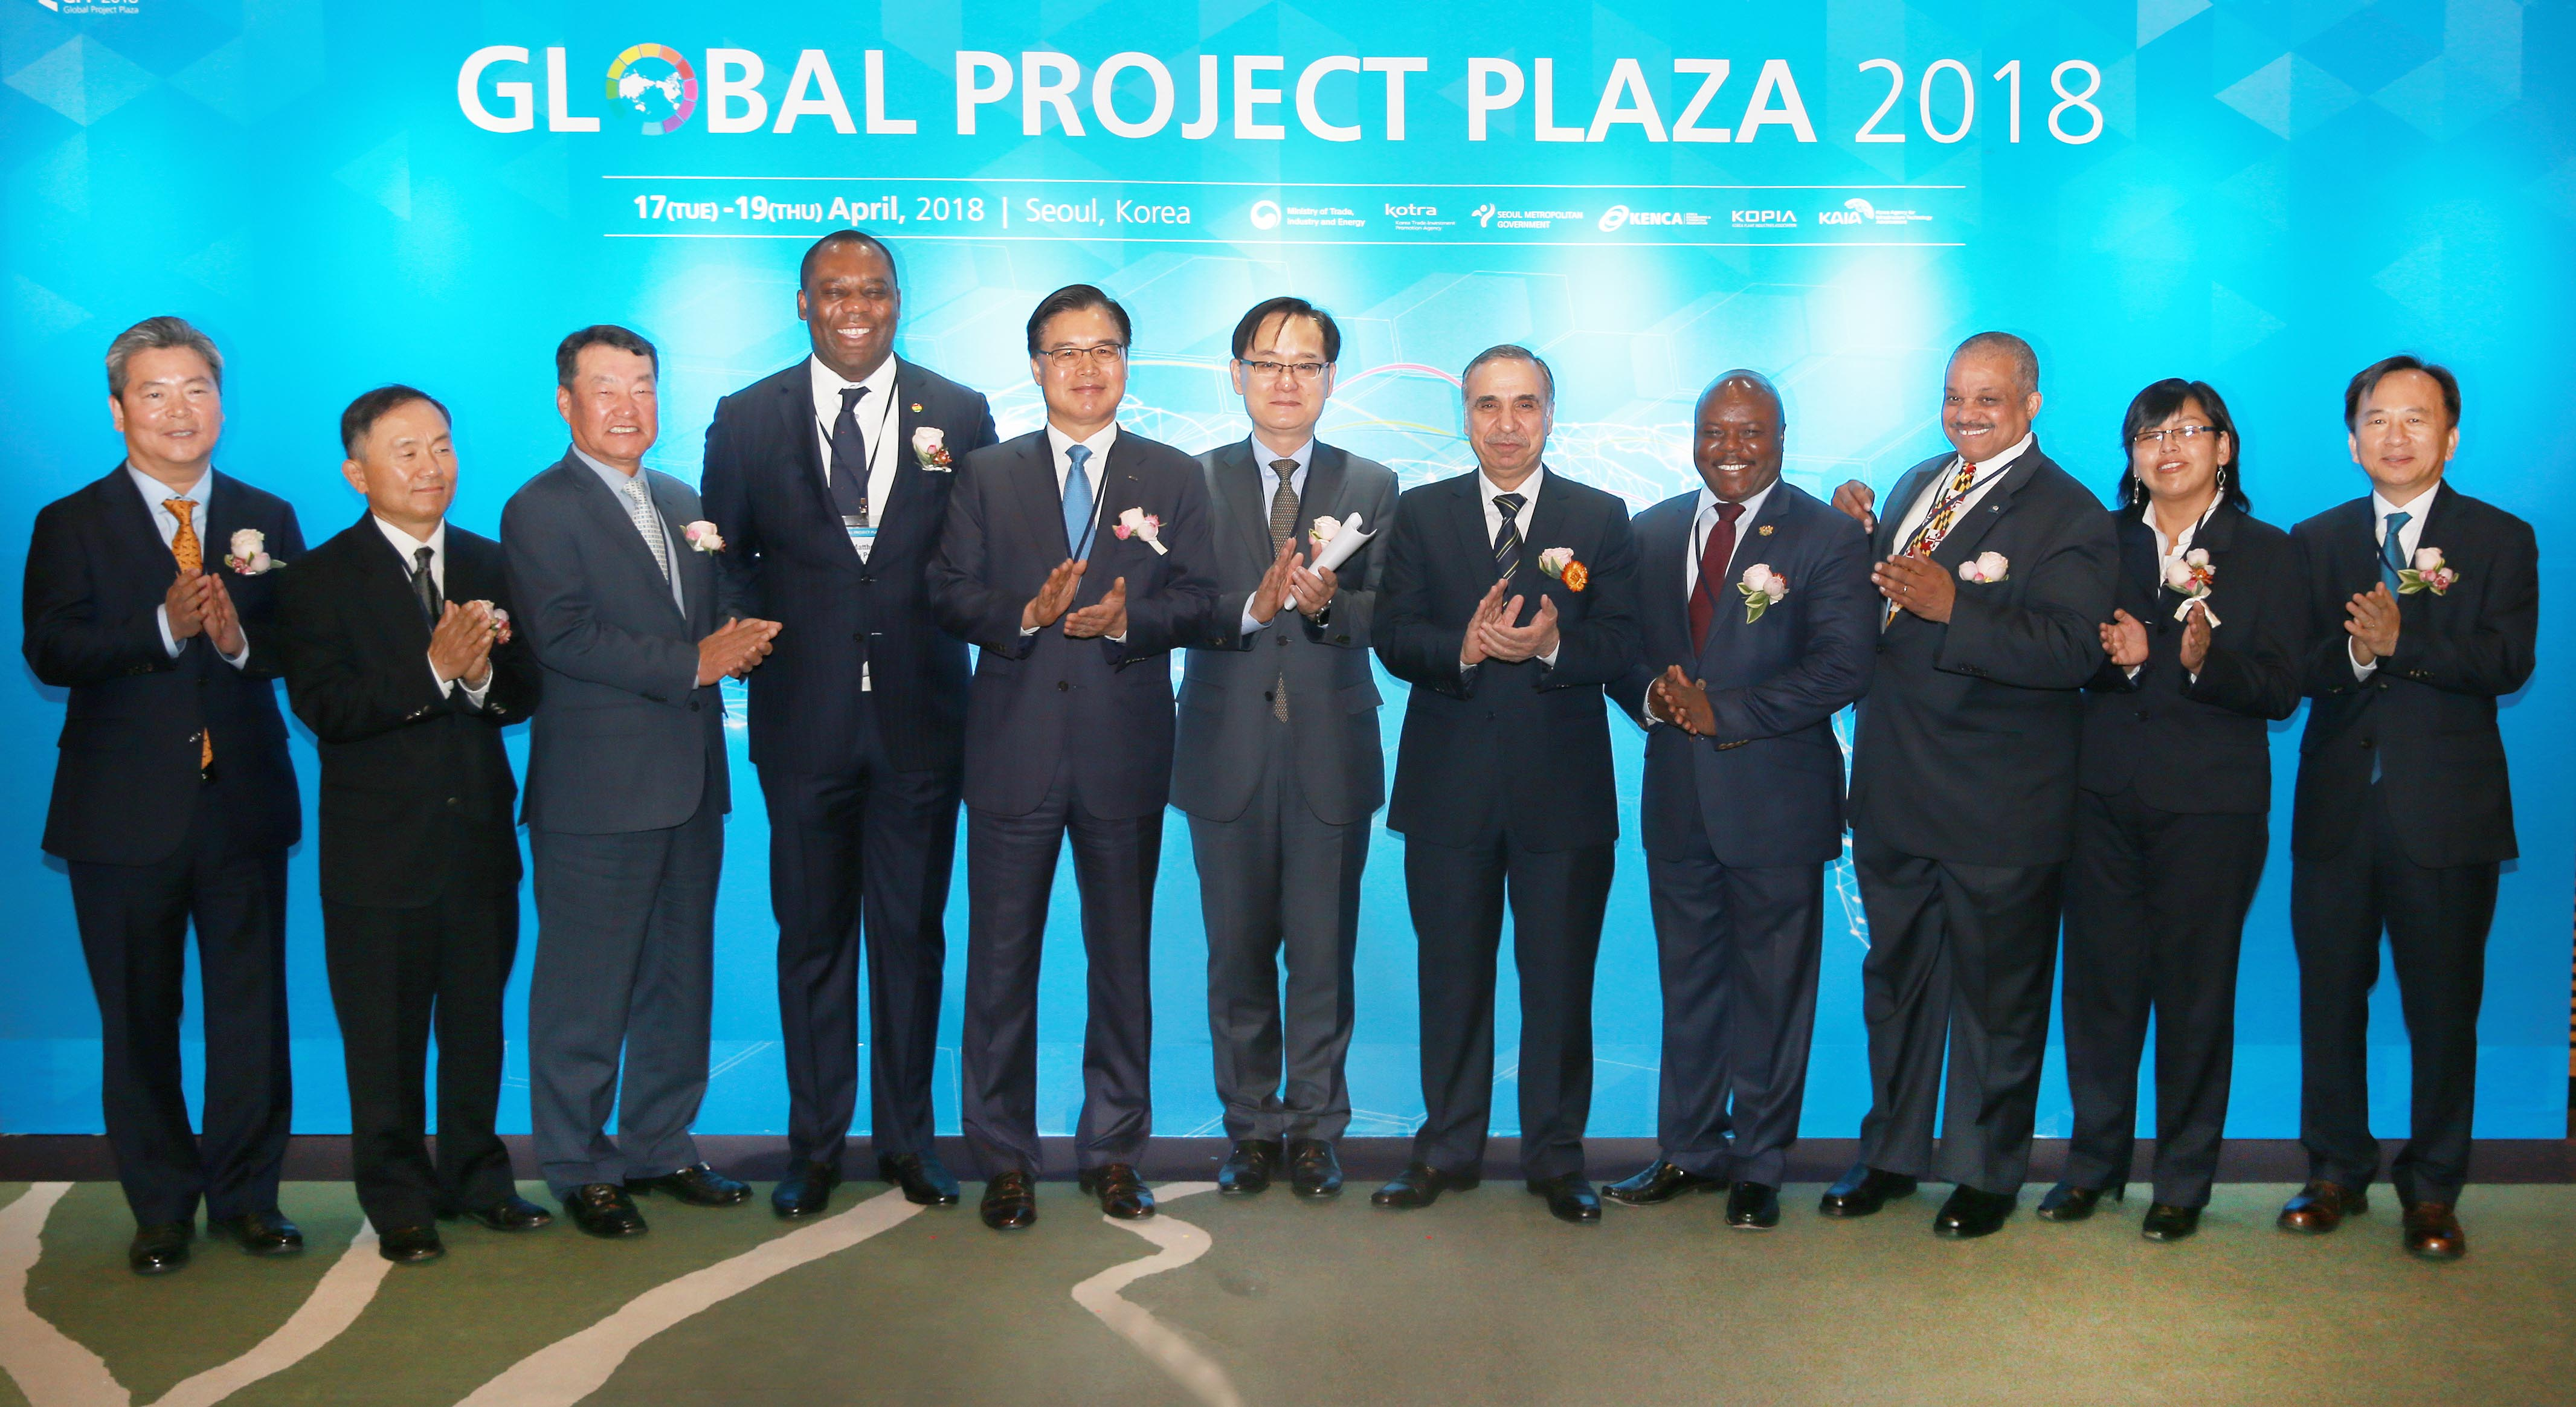 Ministry hosts Global Project Plaza 2018 in Seoul